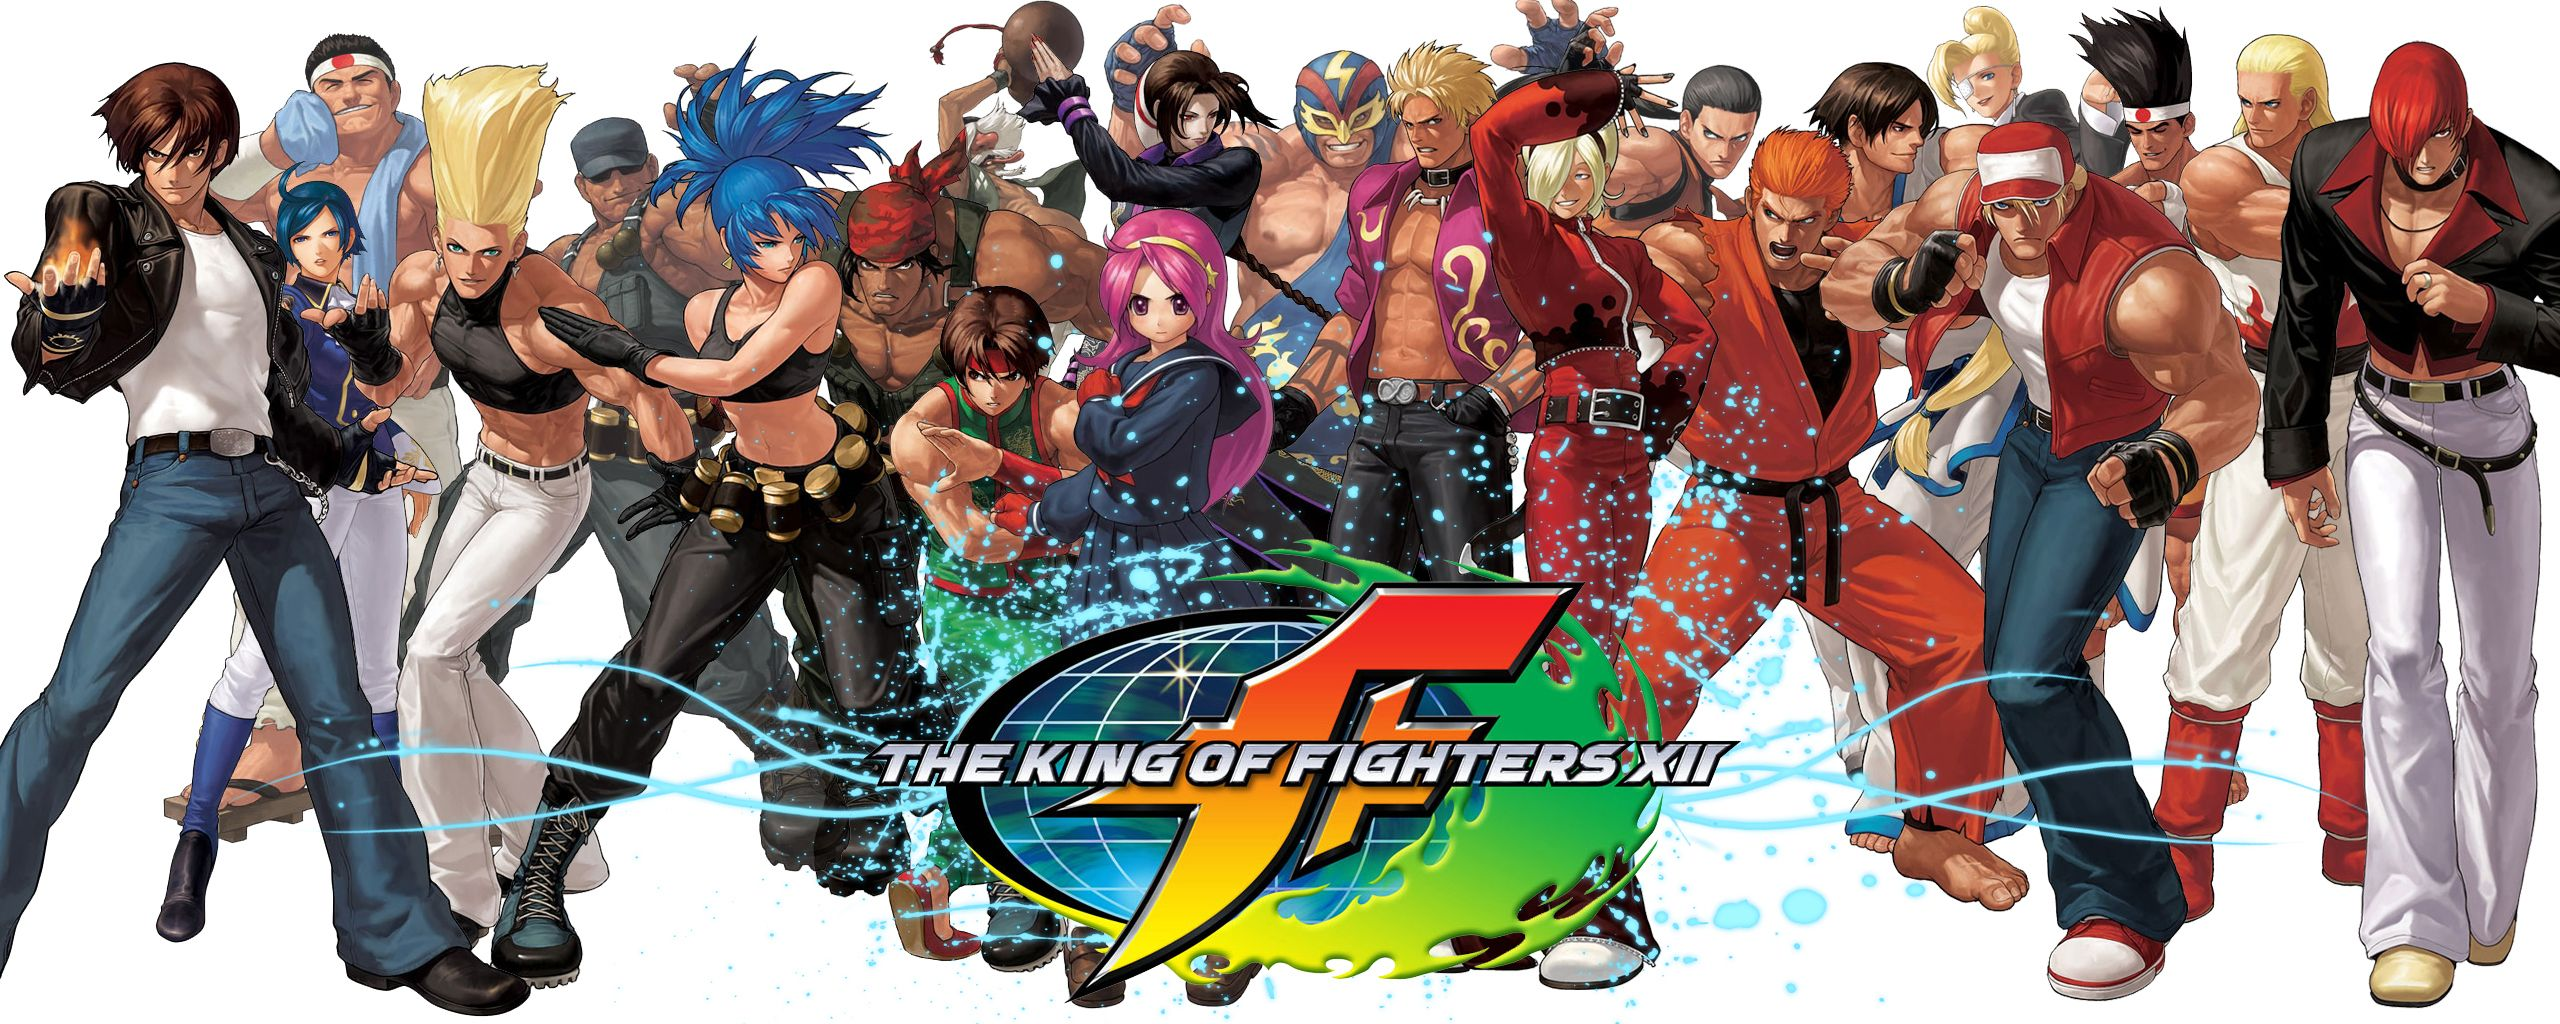 The King Of Fighters Wallpapers Top Free The King Of Fighters